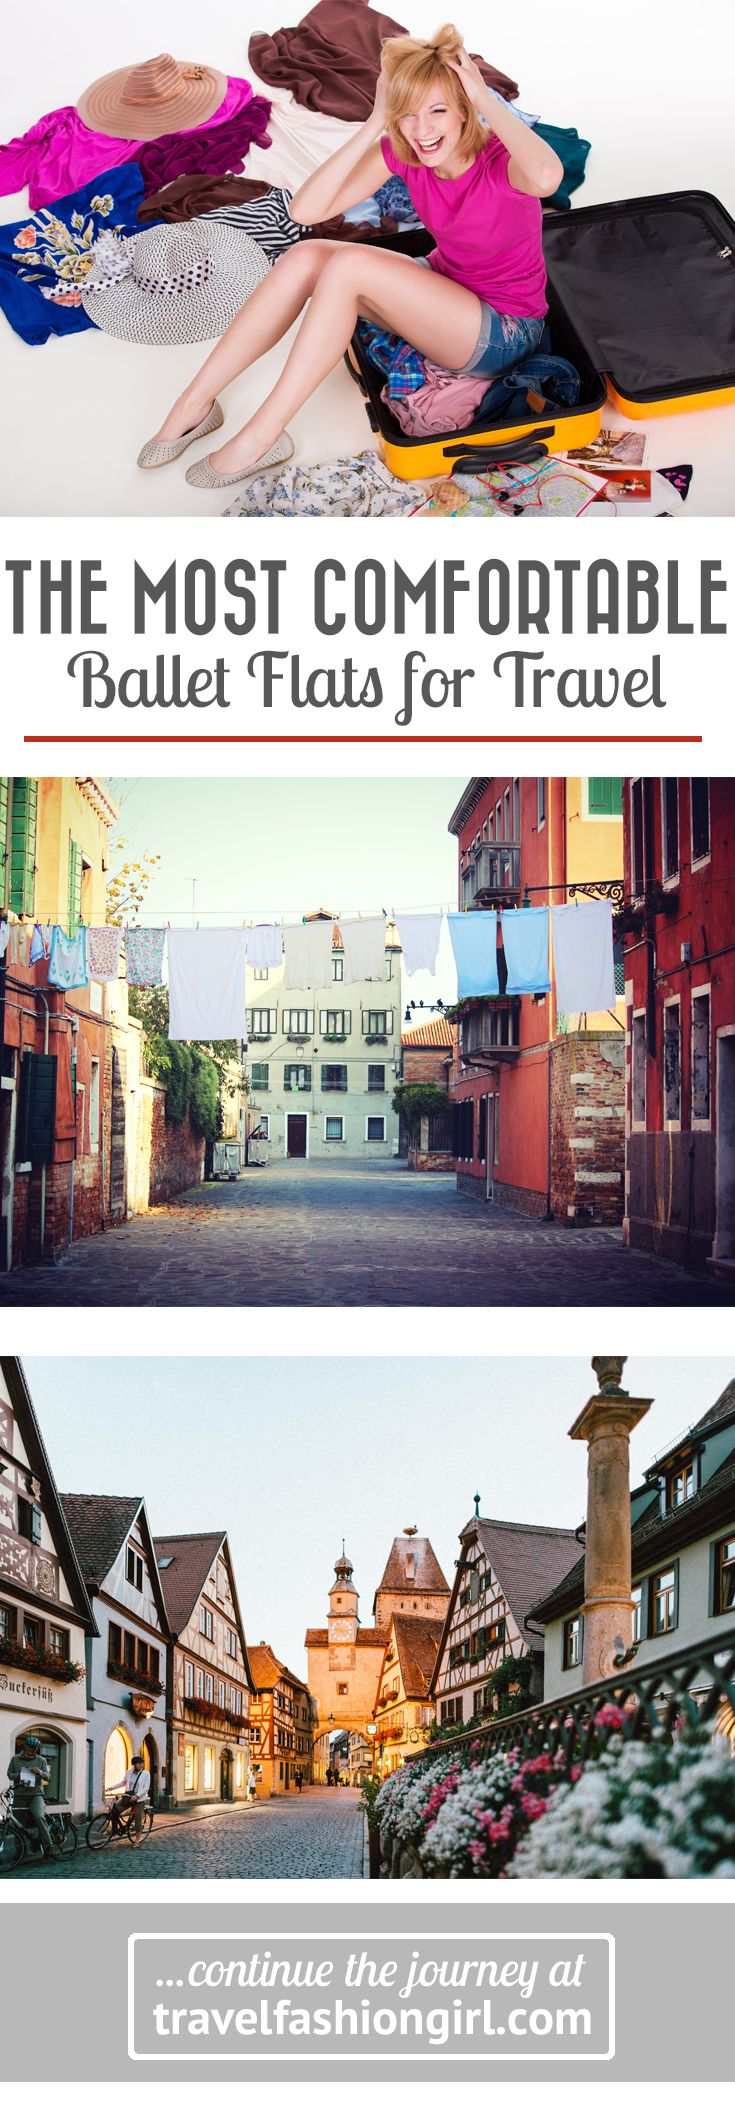 Looking for the most comfortable ballet flats for travel? These are our top picks for the most comfortable styles to wear at home and while traveling. | travelfashiongirl.com